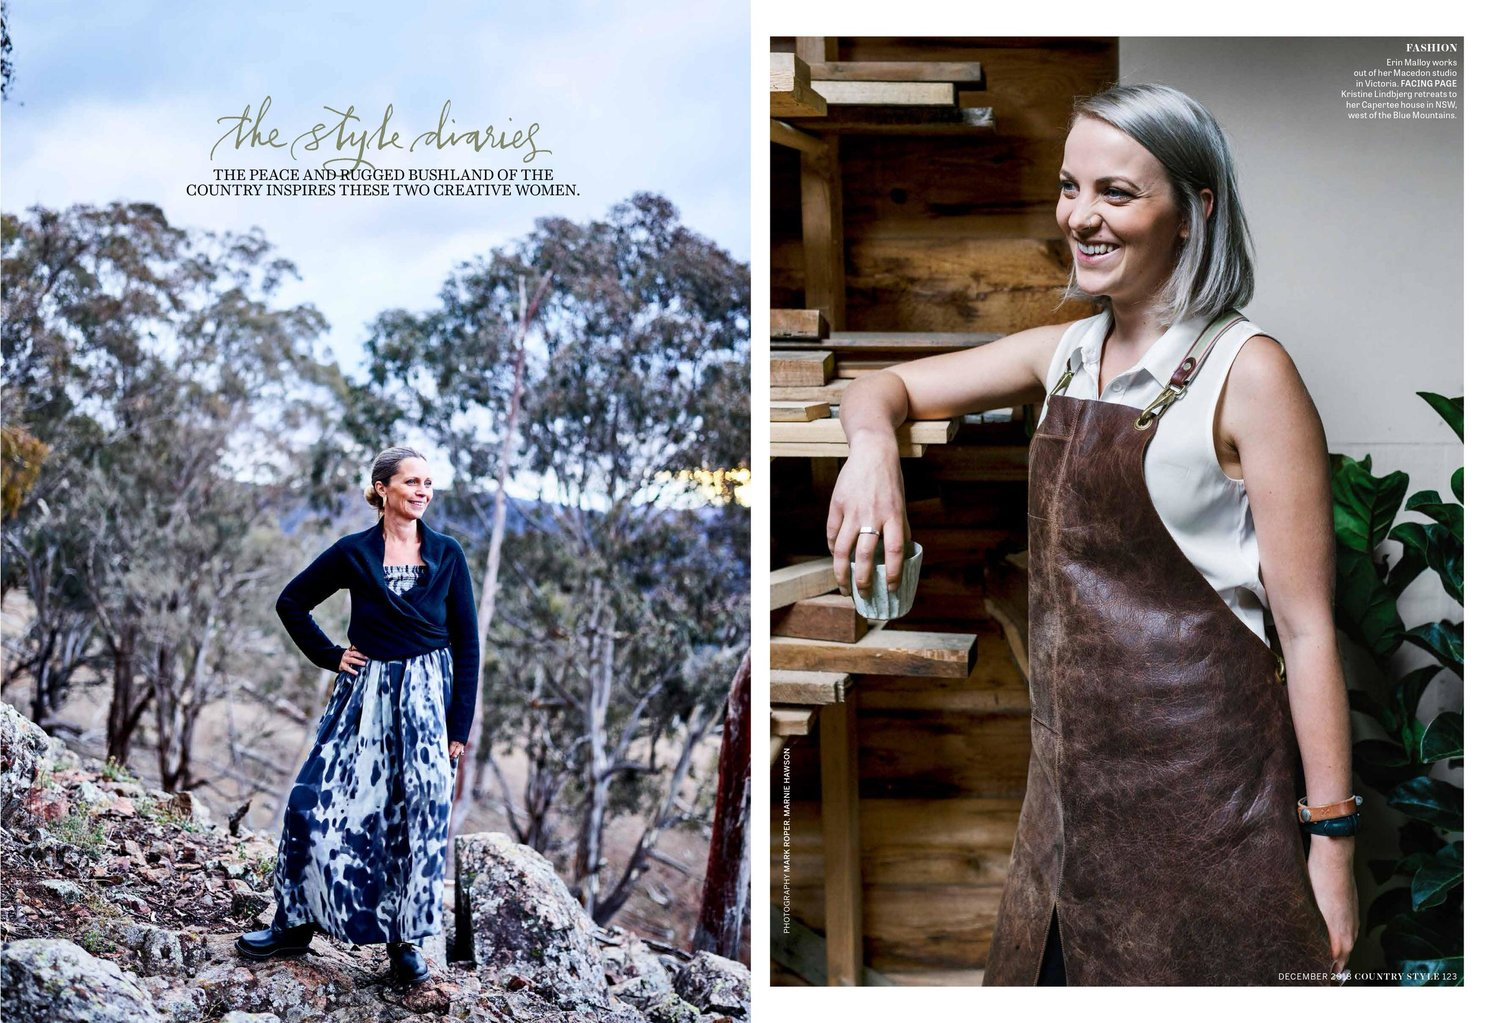 Melbourne+fWoodworker+cerative+Erin+Malloy+and+Country+Style.jpg